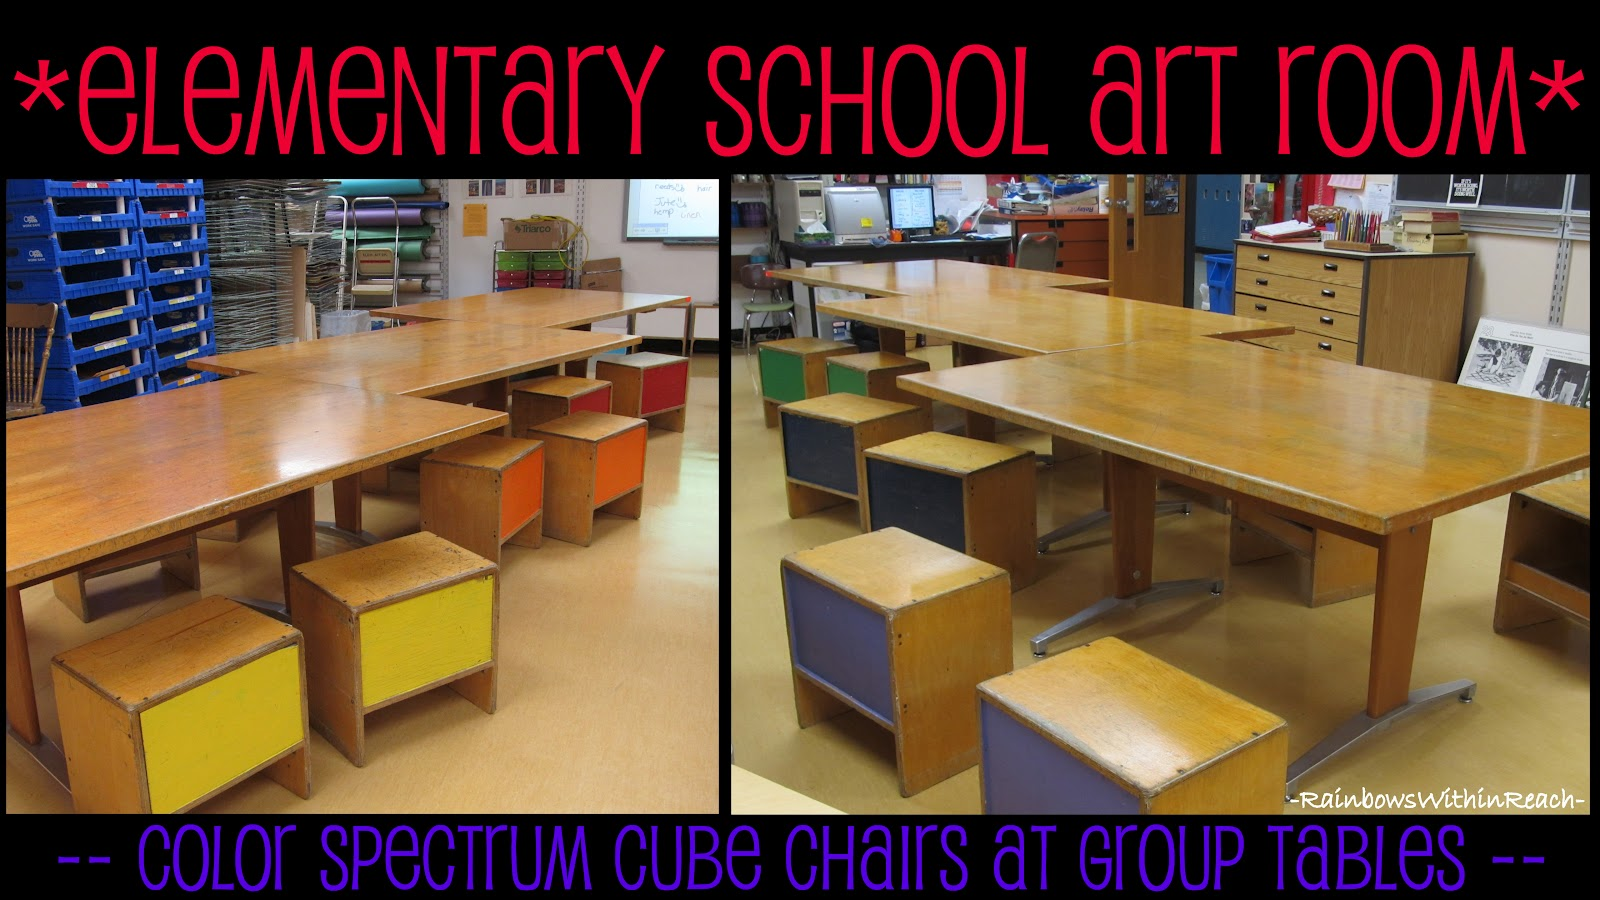 Delicieux Photo Of: Elementary Art Room Furniture (via Art Room RoundUP From  RainbowsWithinReach)